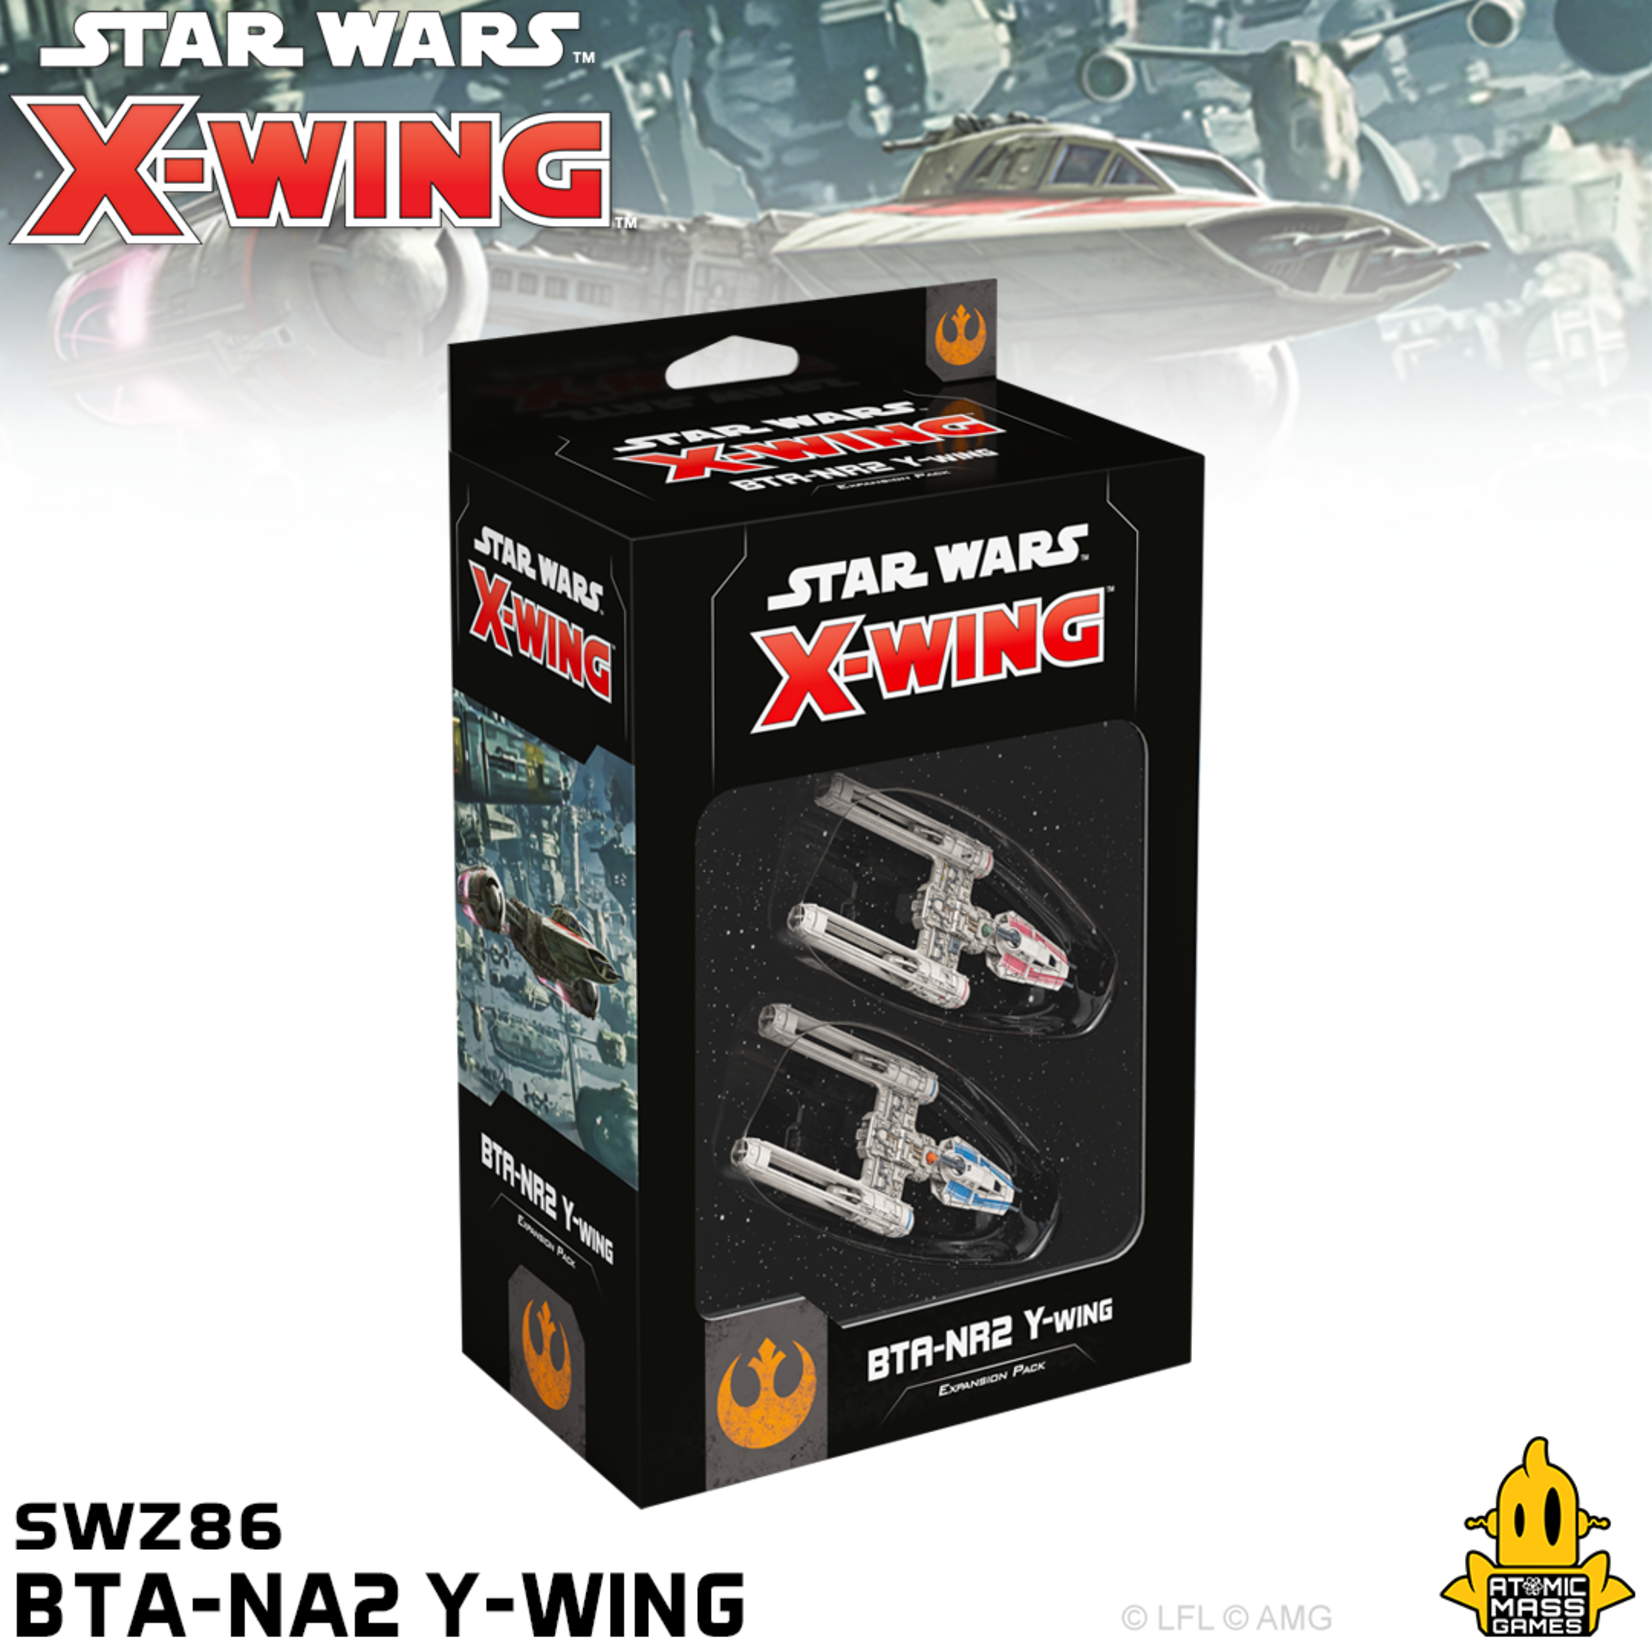 Atomic Mass Games Star Wars X-Wing: 2nd Edition - BTA-NR2 Y-Wing Expansion Pack